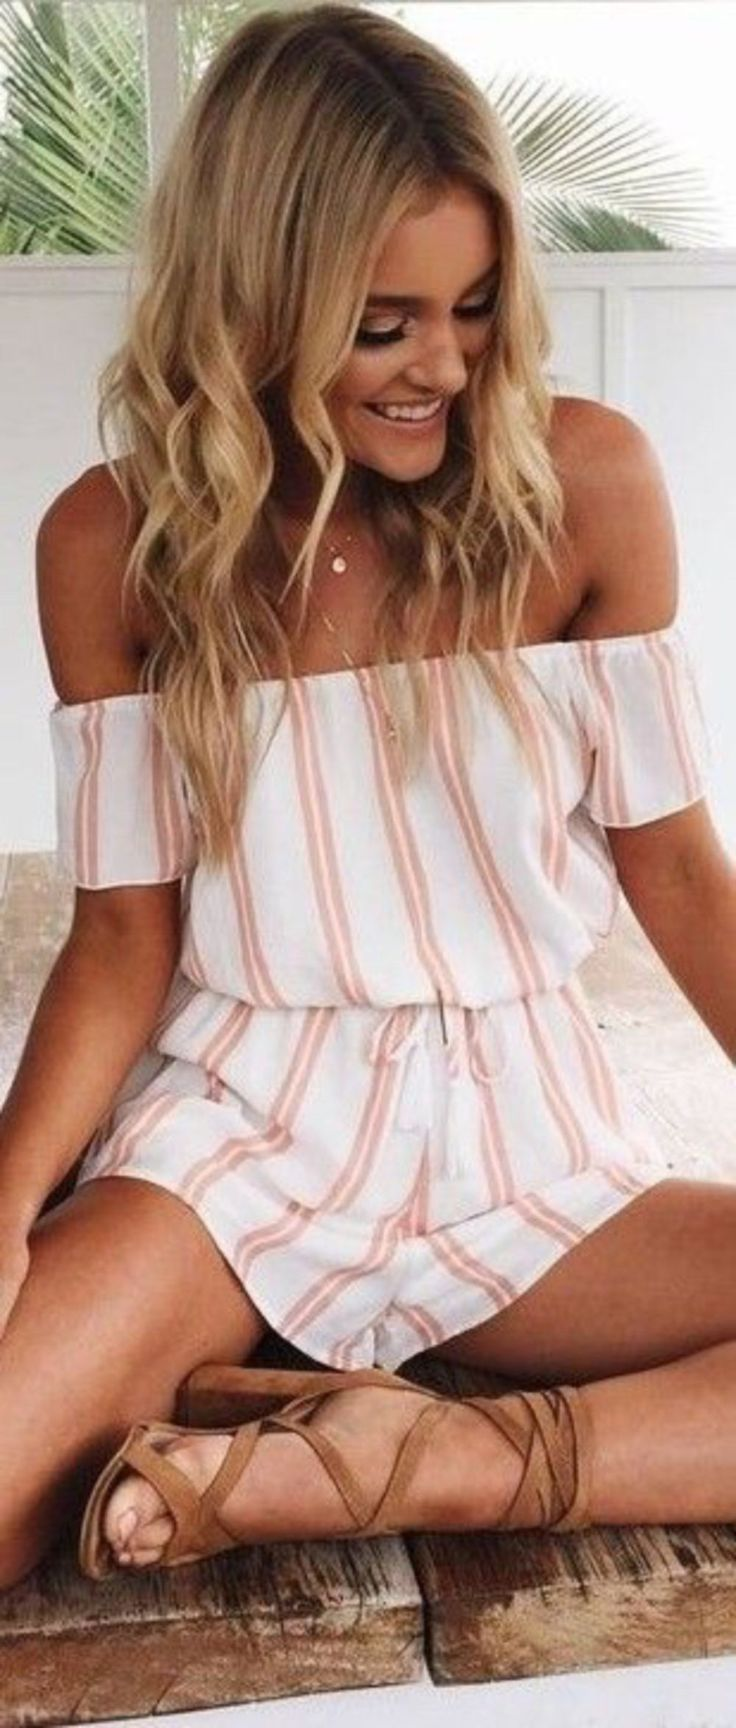 Stunning 39 Cute Summer Vacation Outfits for Women from https://www.fashionetter.com/2017/06/17/39-cute-summer-vacation-outfits-women/